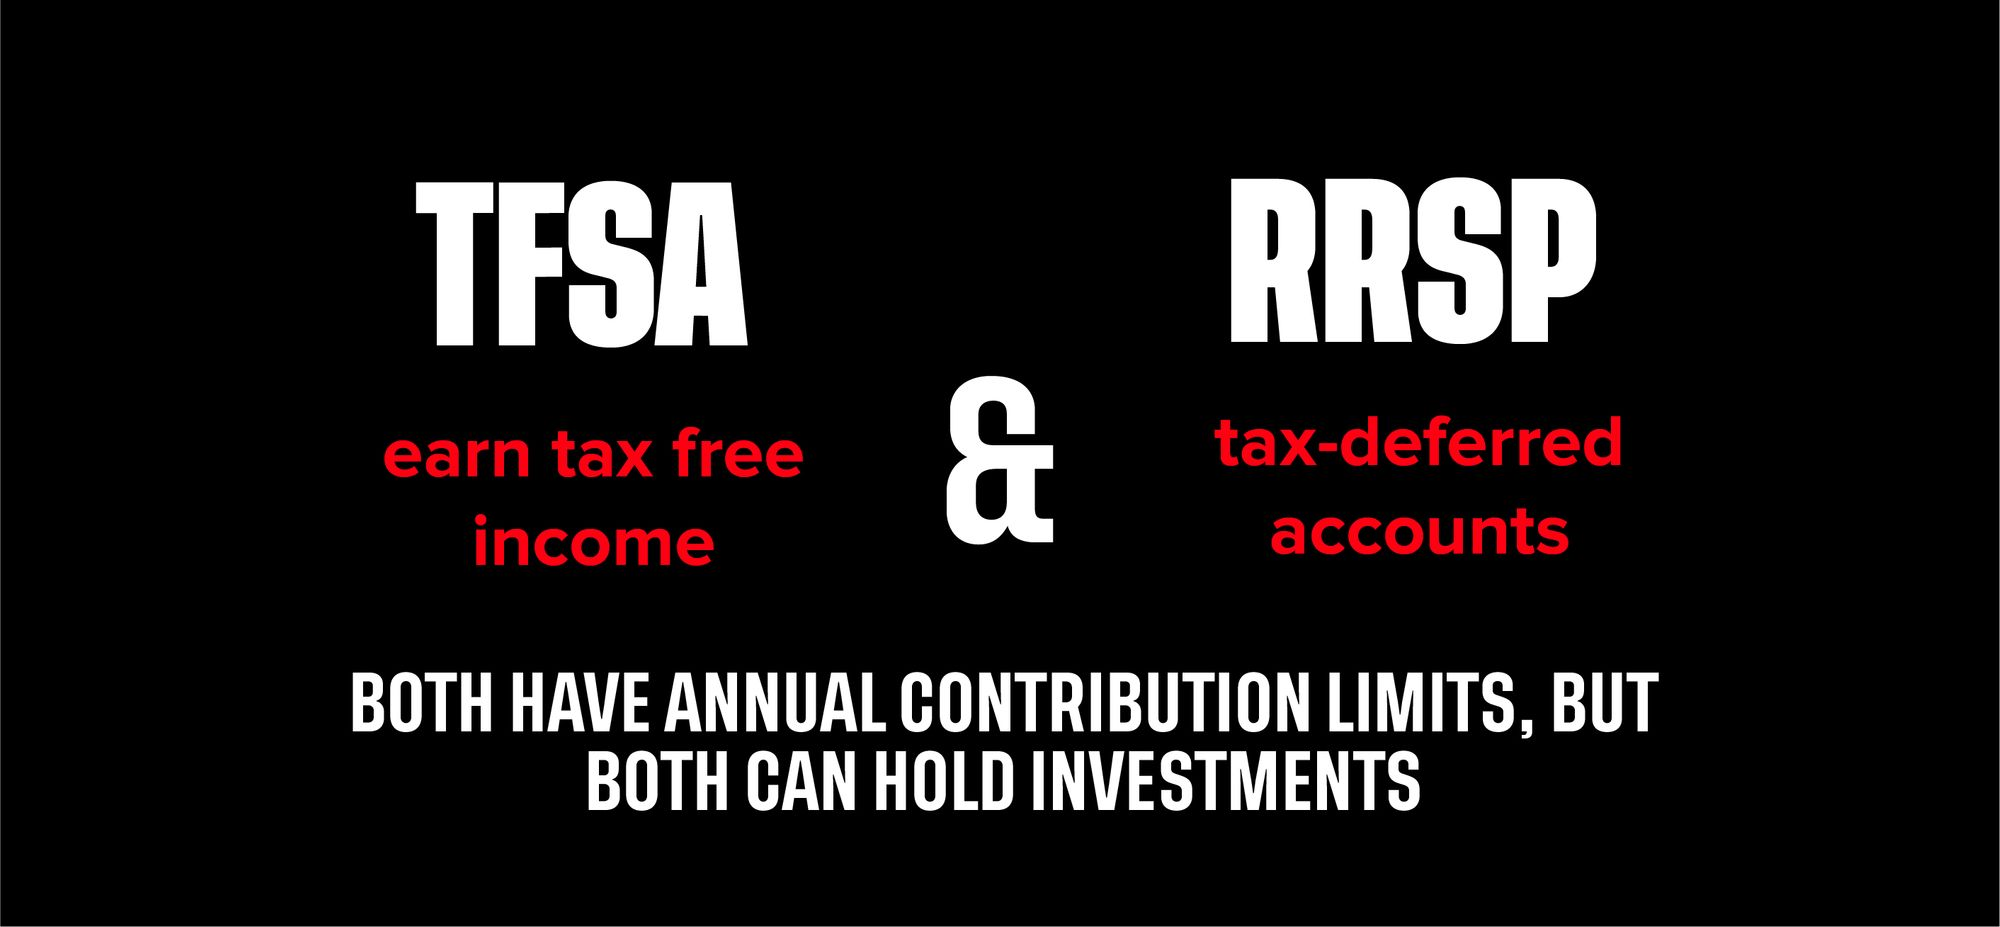 Graphic comparing TFSA & RRSP. Text says: TFSA - earn tax free income & RRSP - tax-deferred accounts. Both have annual contribution limits, but both can hold investments